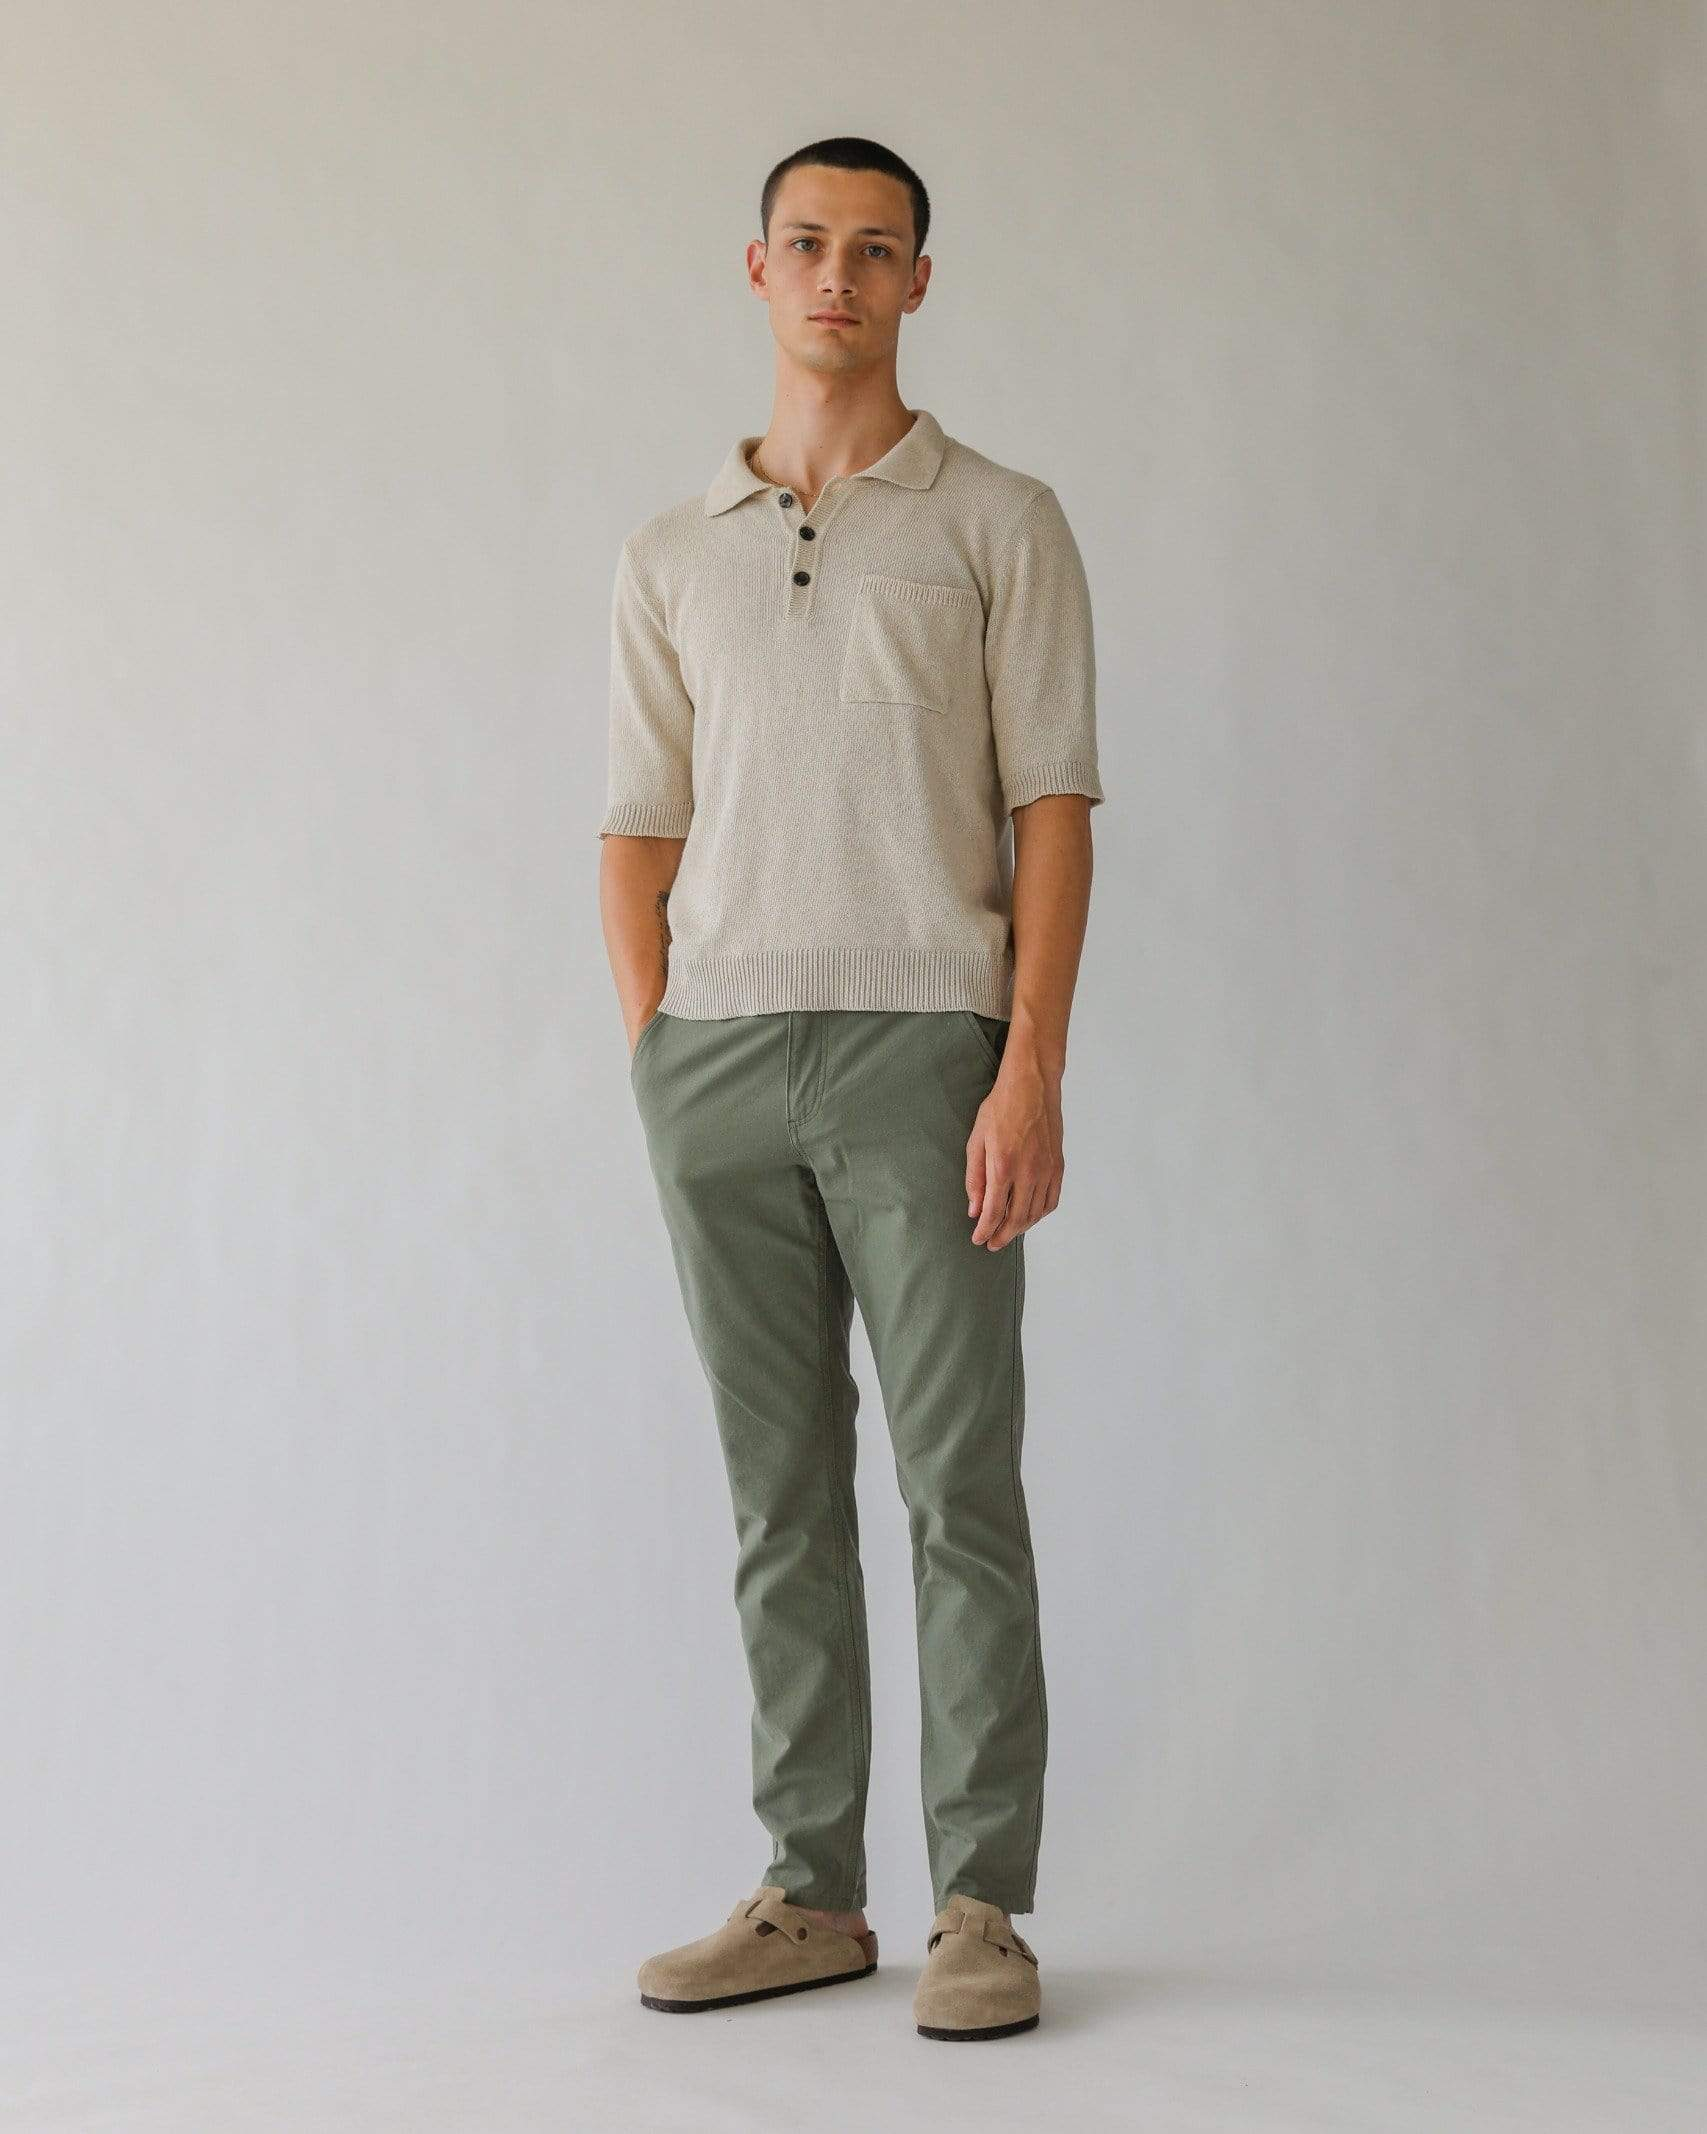 Knit Slouchy Polo - Natural